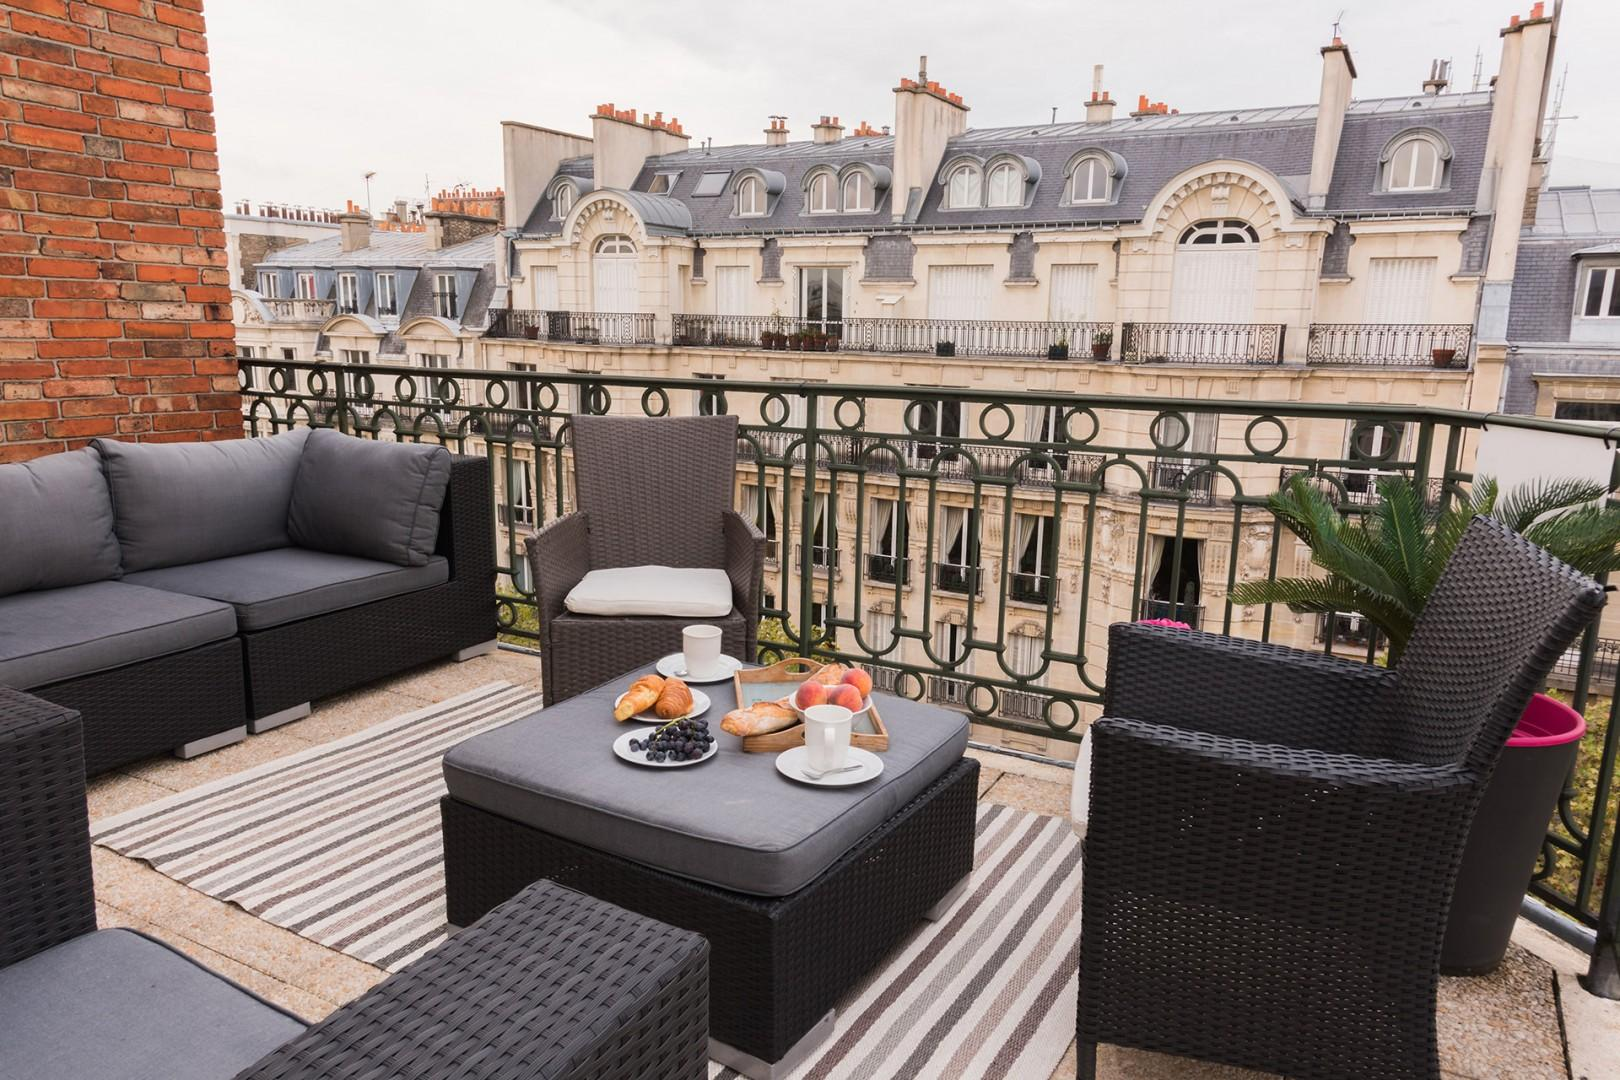 Lounge on the comfortable sofa and chairs as the sun sets over the rooftops of Paris.